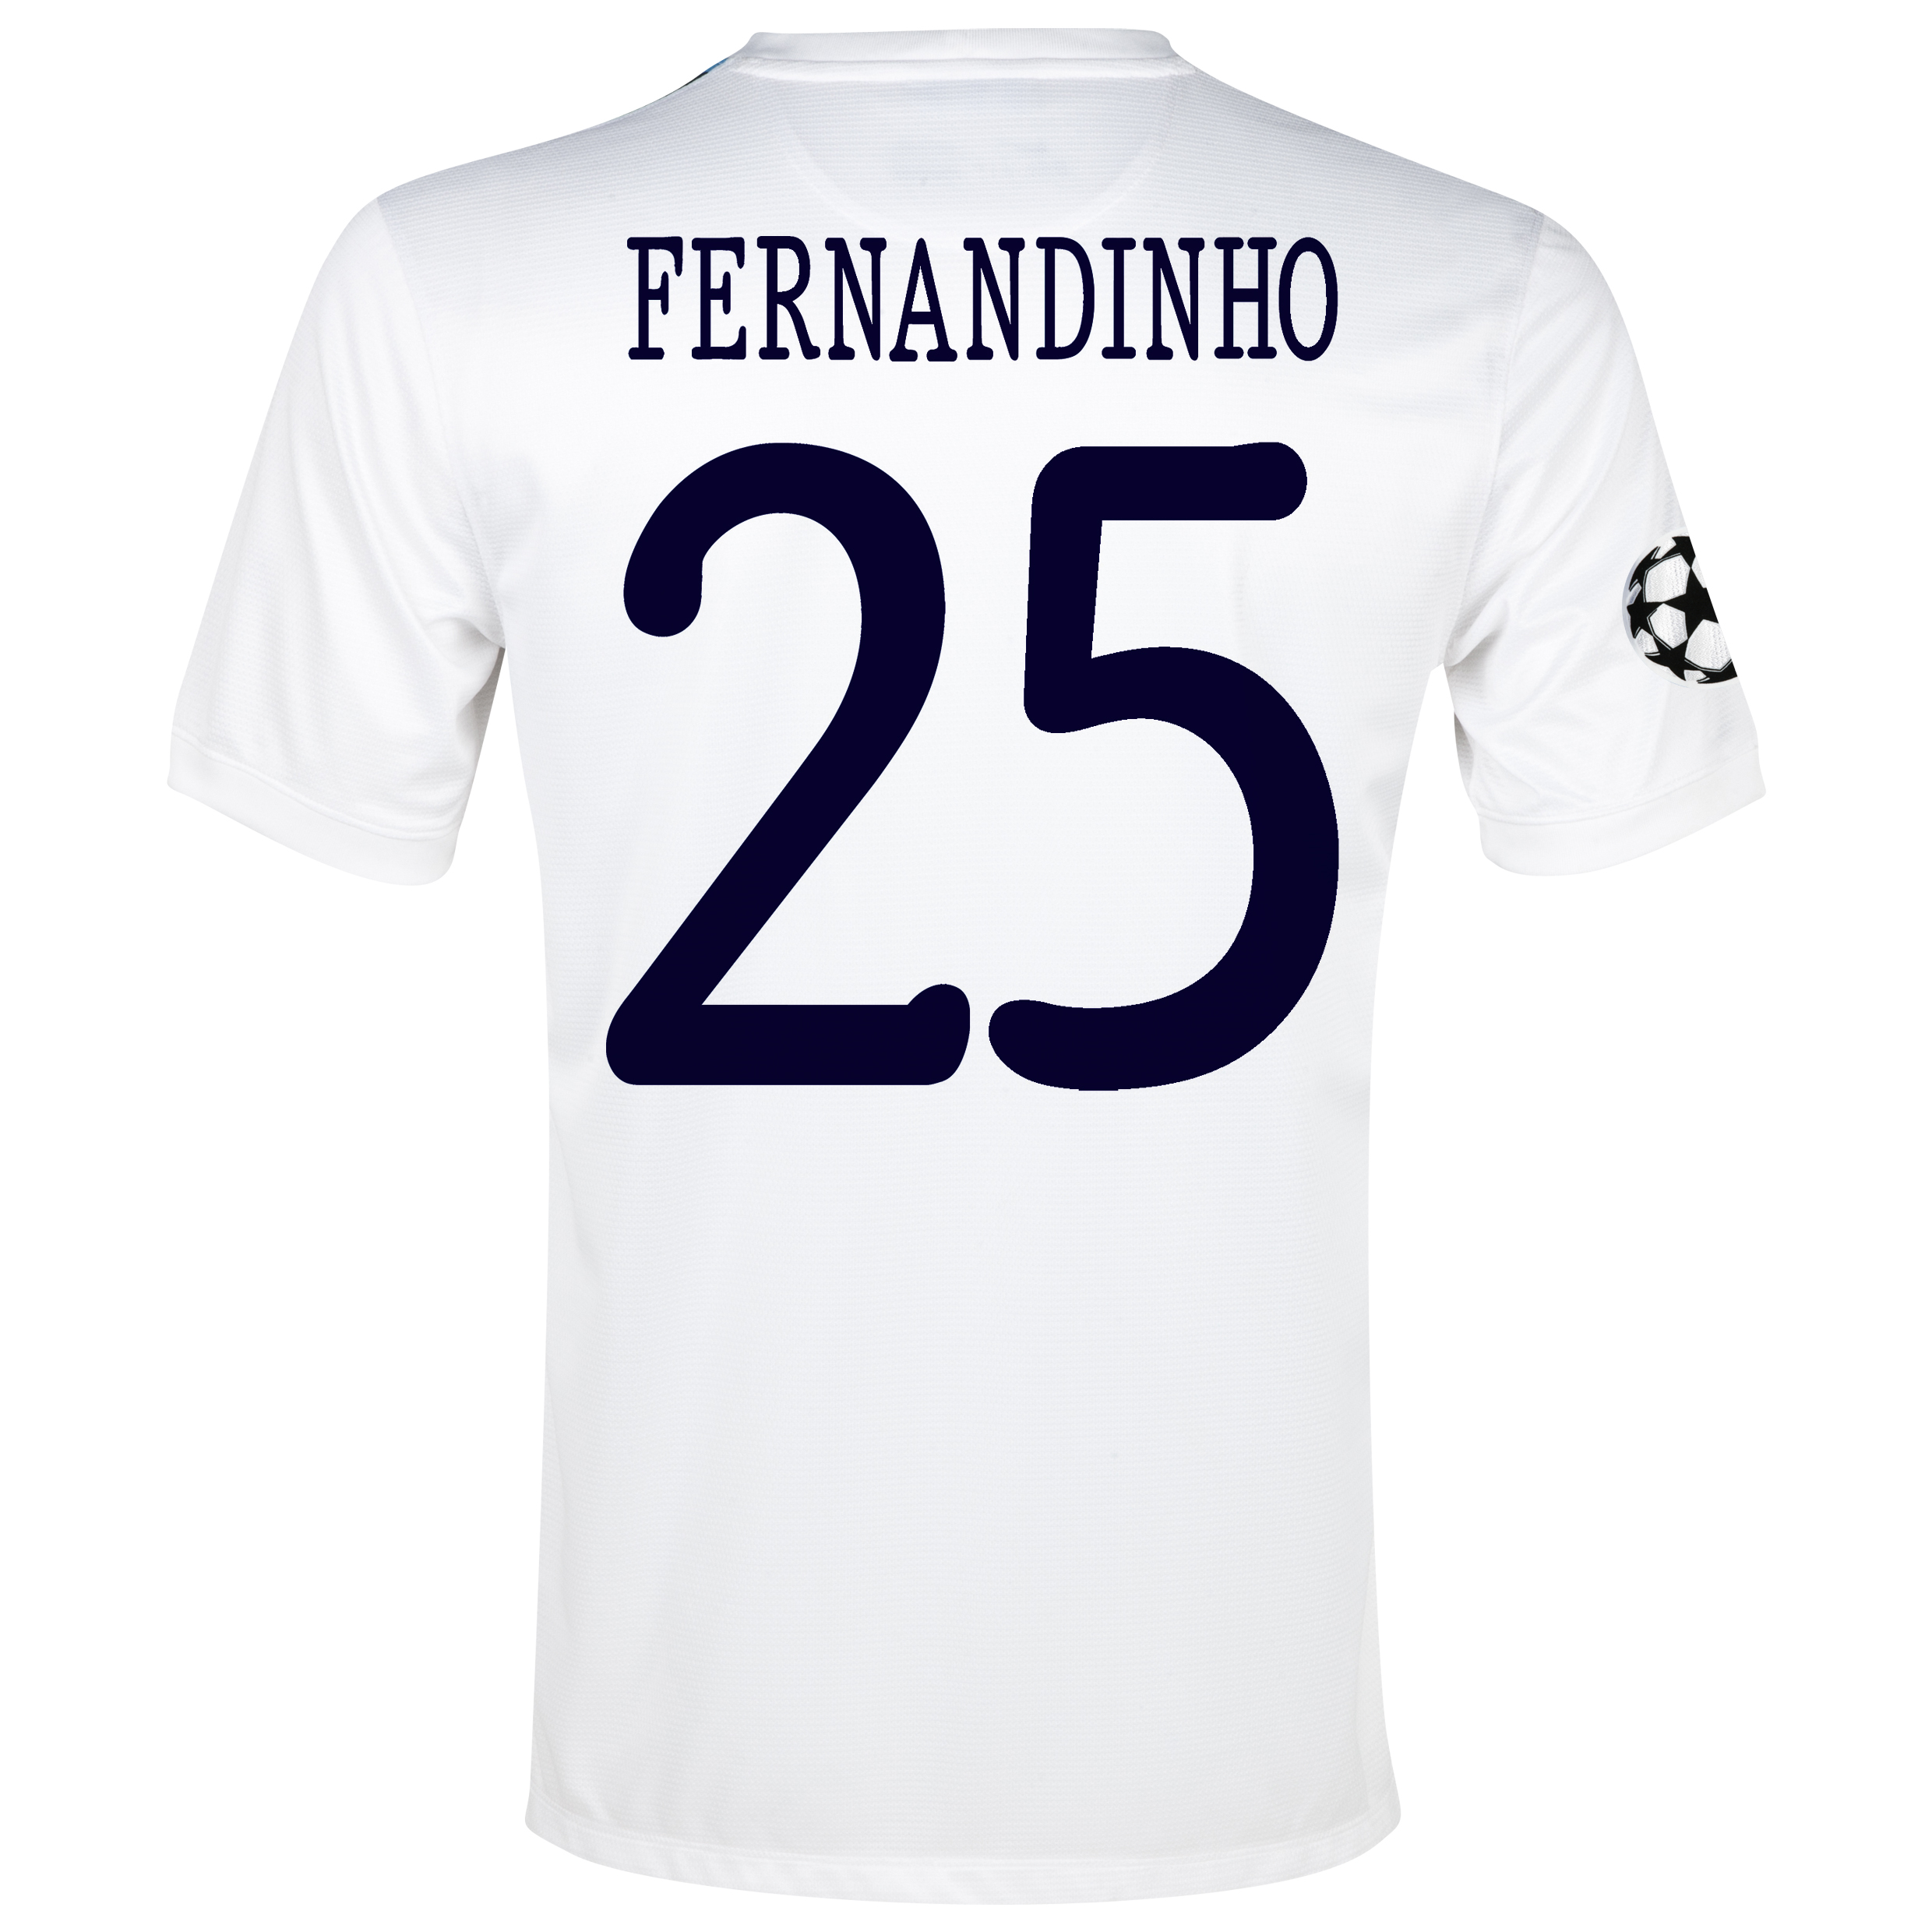 Manchester City UEFA Champions League Cup Away Shirt 2013/14 White with Fernandinho 25 printing